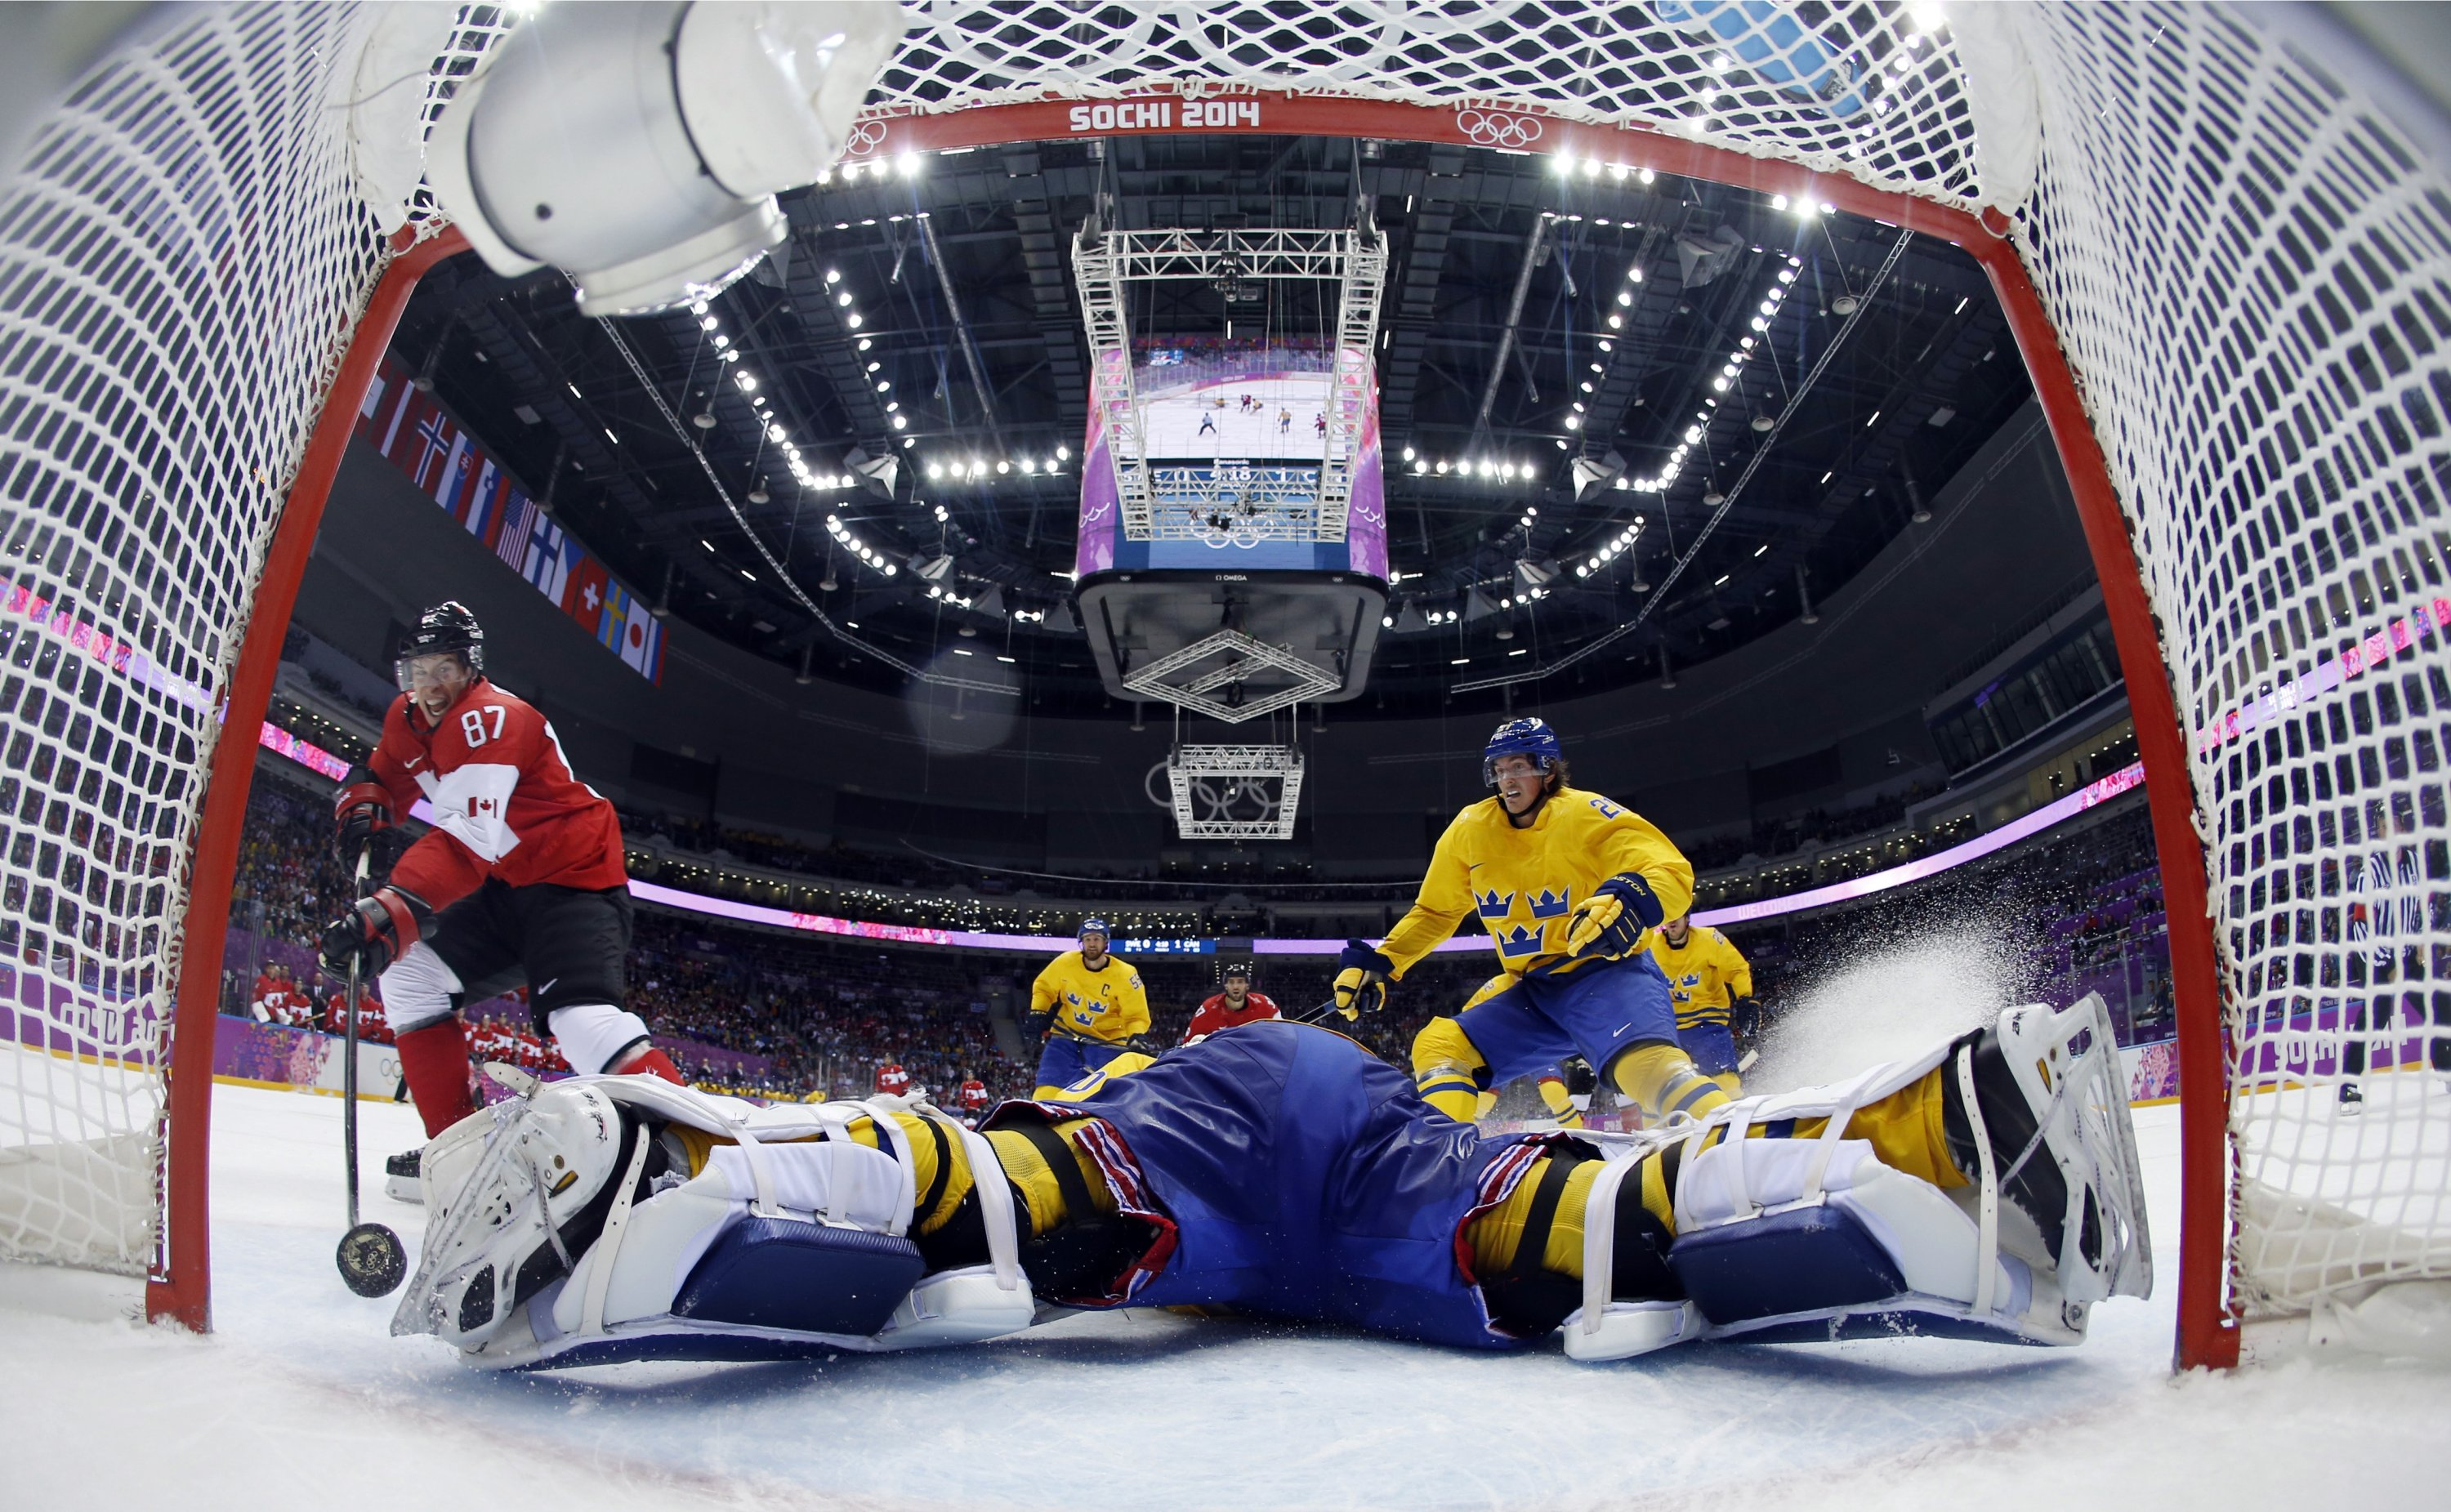 Canada forward Sidney Crosby (L) scores a goal past Sweden goaltender Henrik Lundqvist during the second period of the men's gold medal ice hockey game at the 2014 Winter Olympics in Sochi, Russia, Feb. 23, 2014. (AP File Photo)